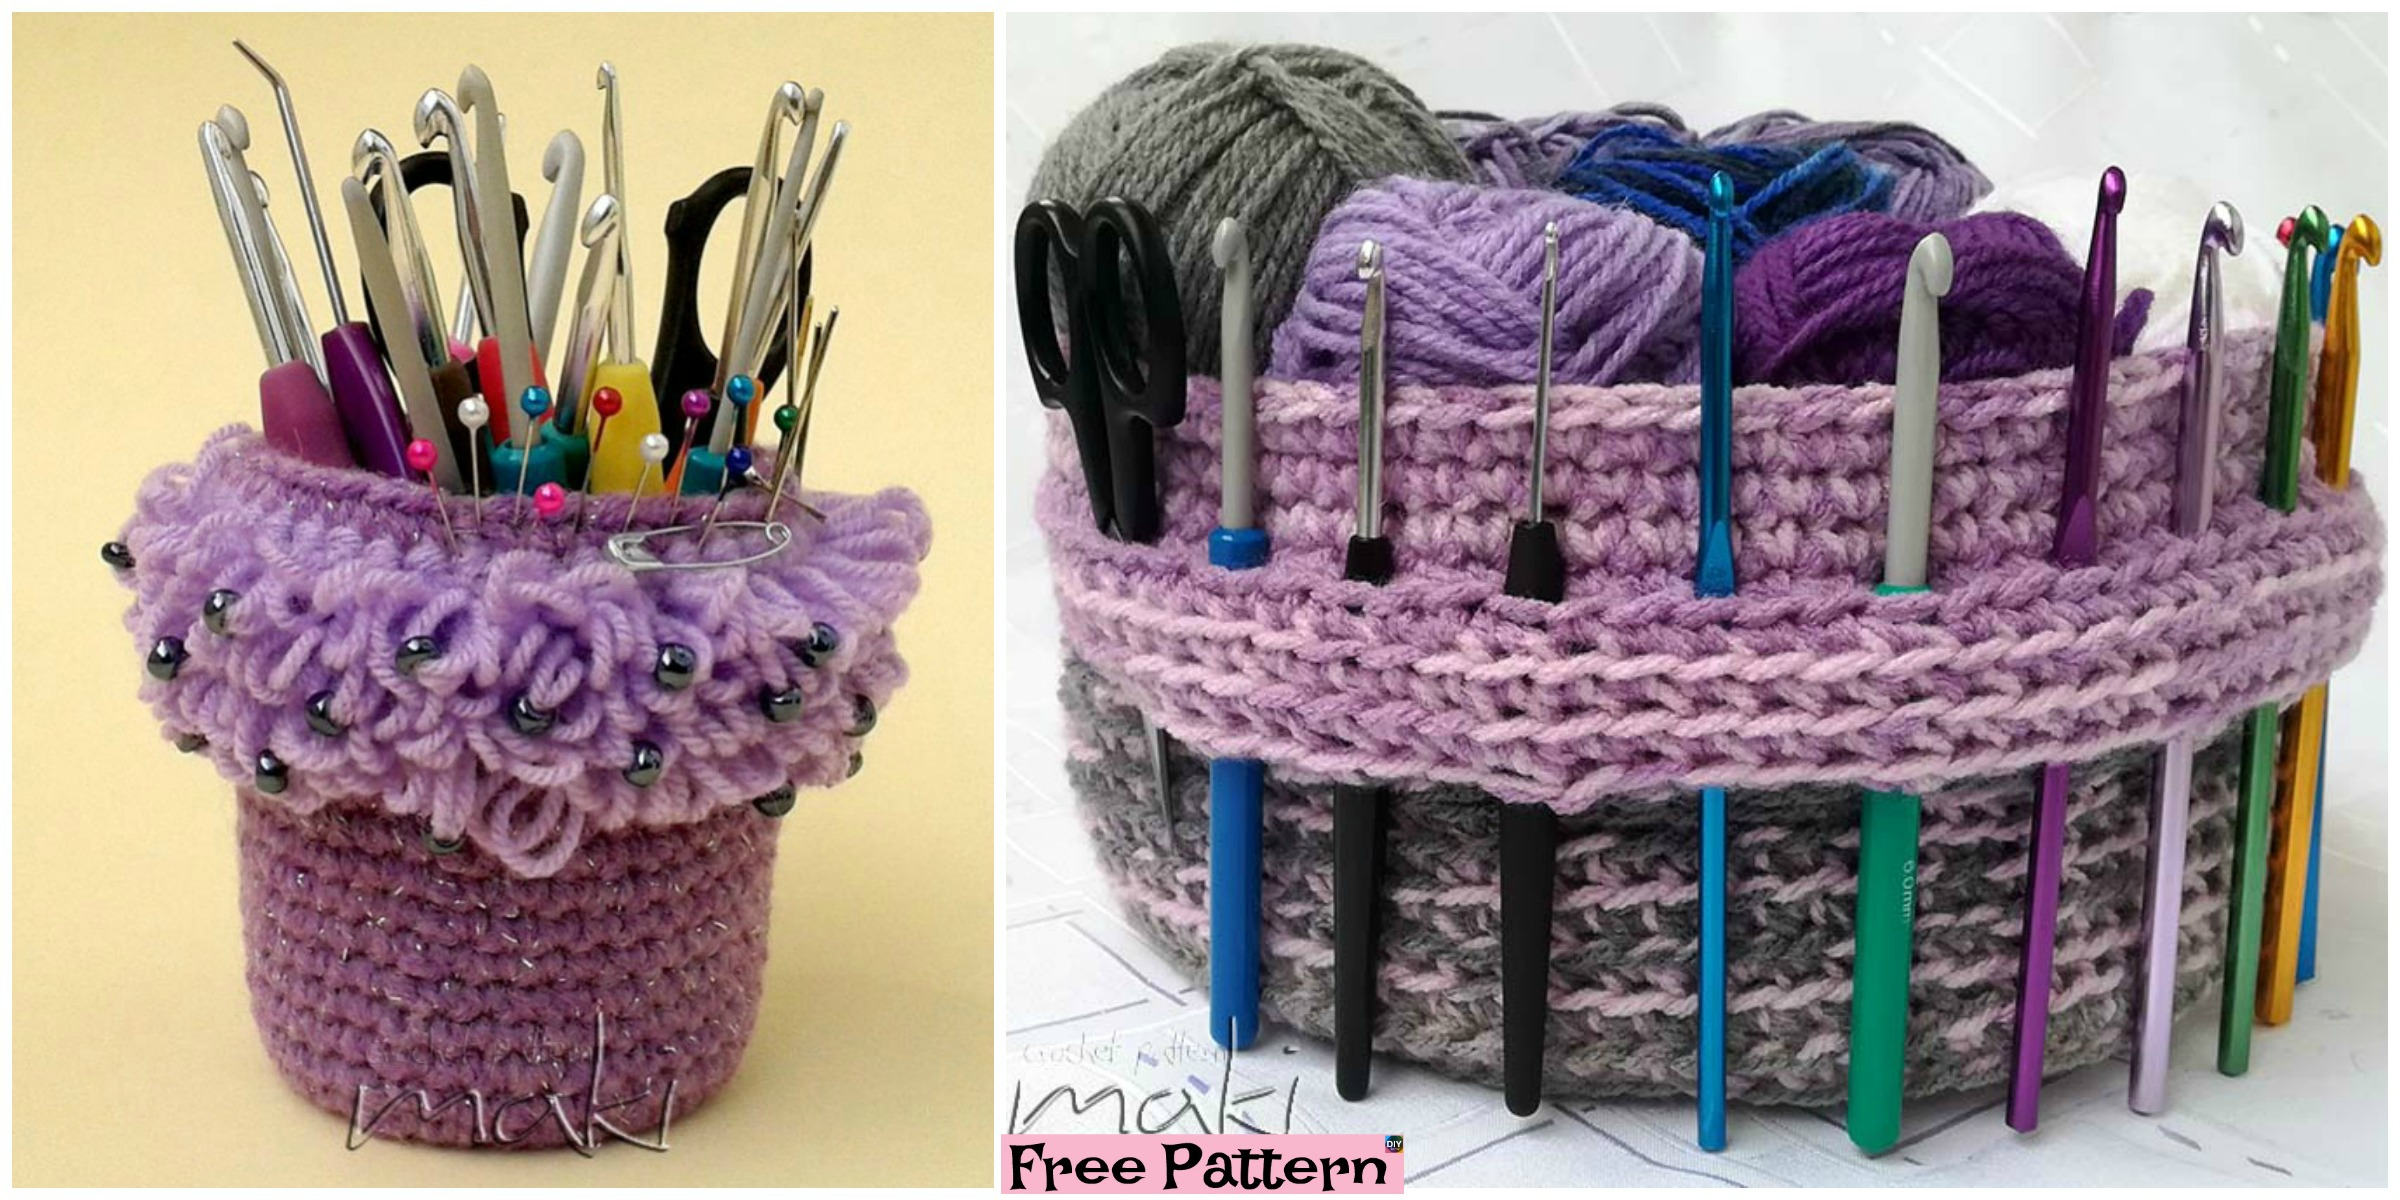 Creative Crochet Yarn Basket – Free Pattern